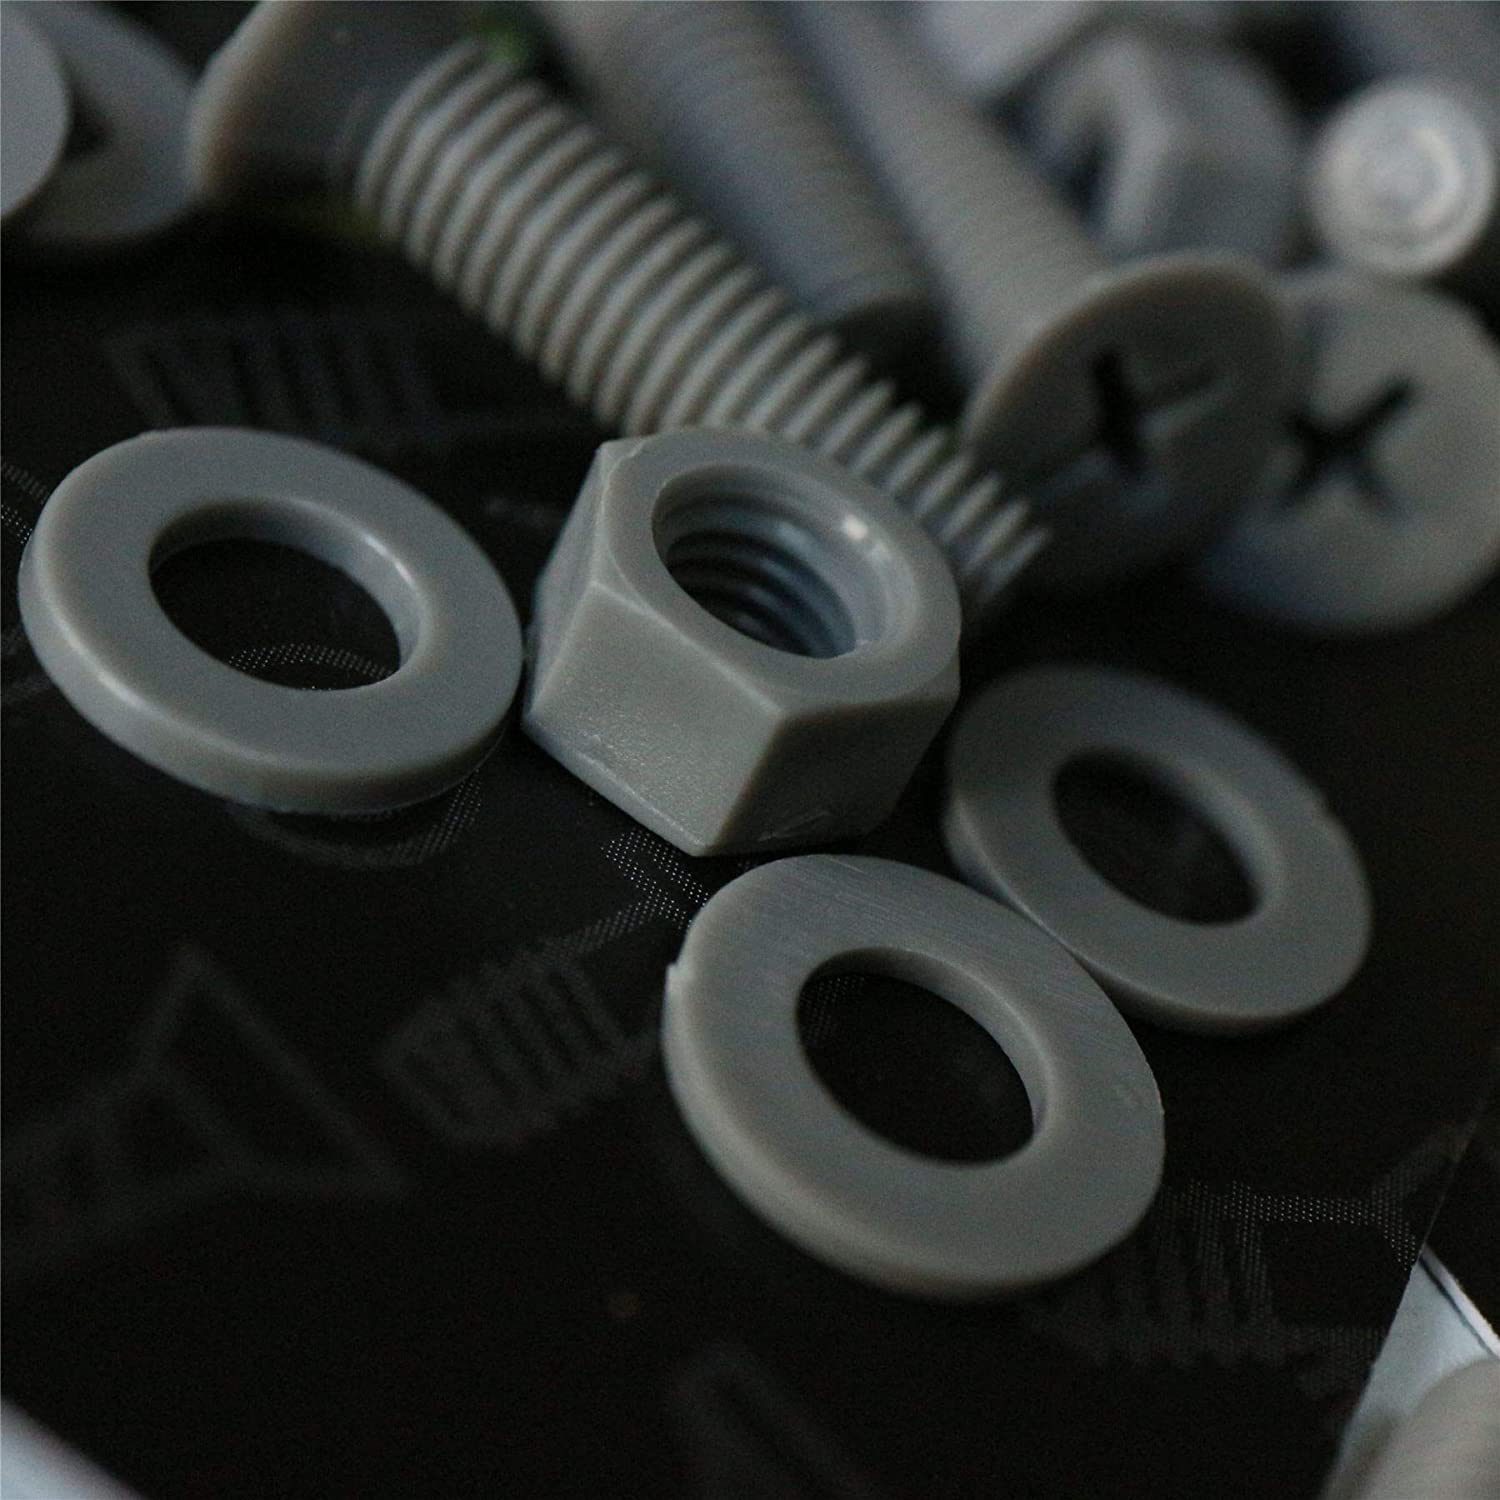 Acrylic Washers Plastic Nuts and Bolts M5 x 20mm Anti-Corrosion PP 20 x Grey Countersunk Screws Polypropylene 13//64 x 25//32 Gray Gray Water Resistant 13//64 x 25//32 Caterpillar Red Chemical Resistant